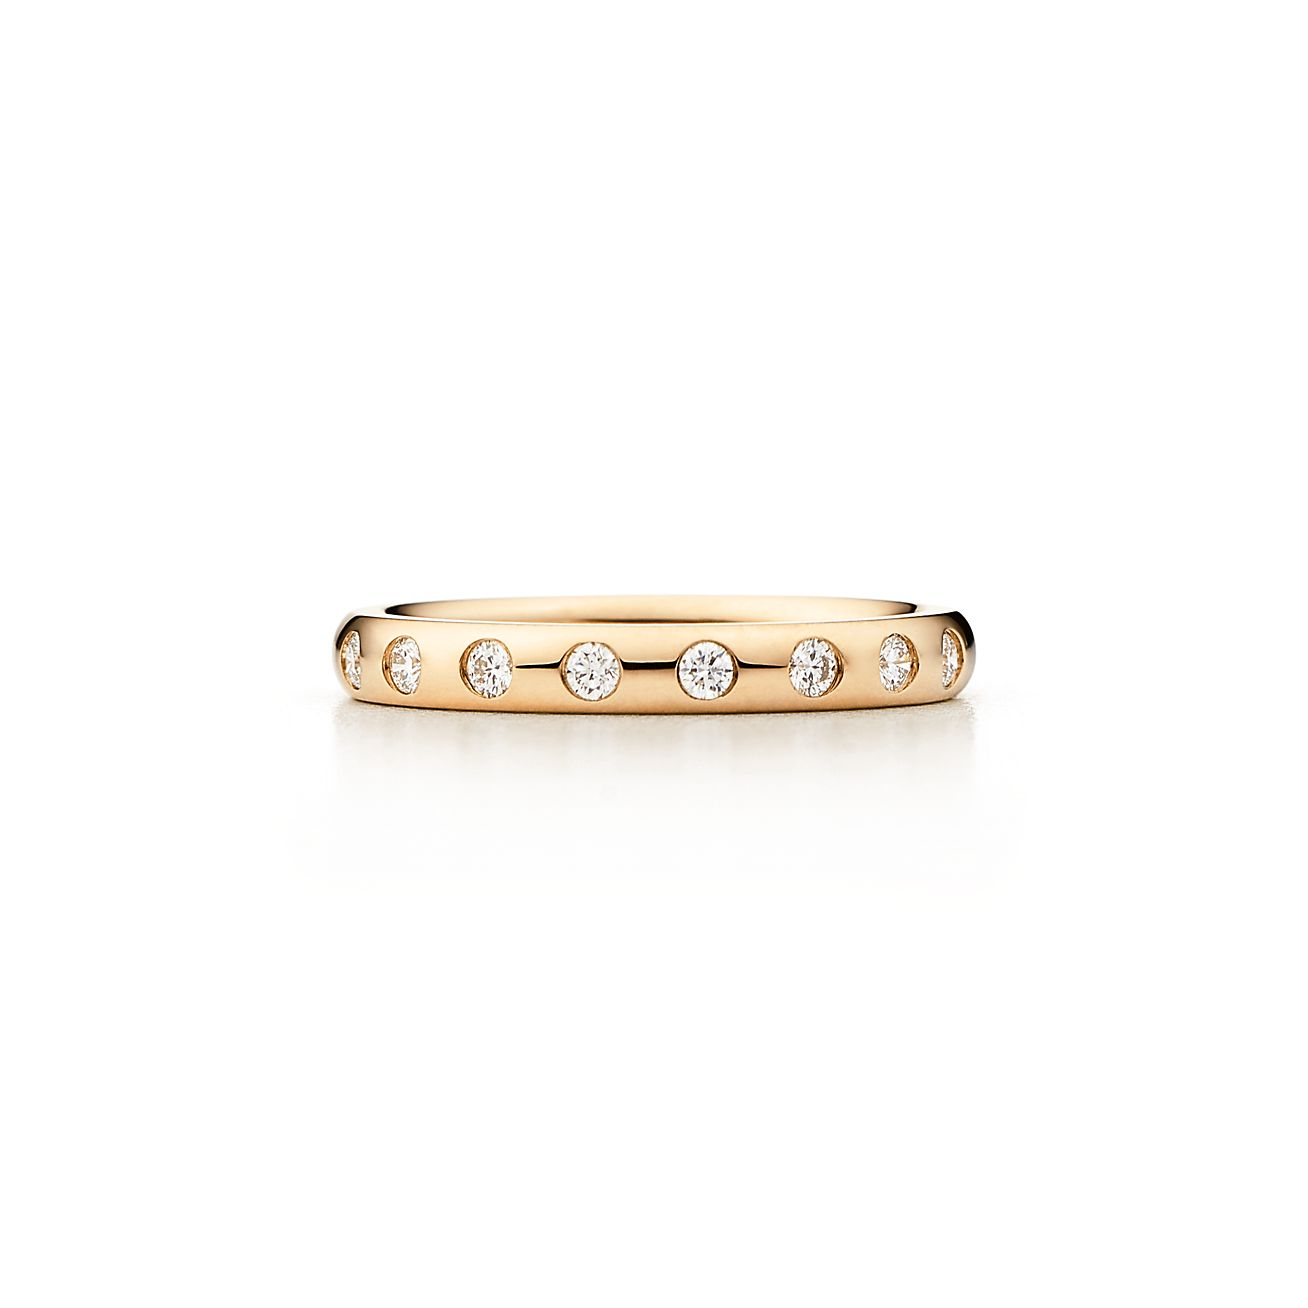 Elsa Peretti band ring with a diamond in 18k gold - Size 10 1/2 Tiffany & Co.